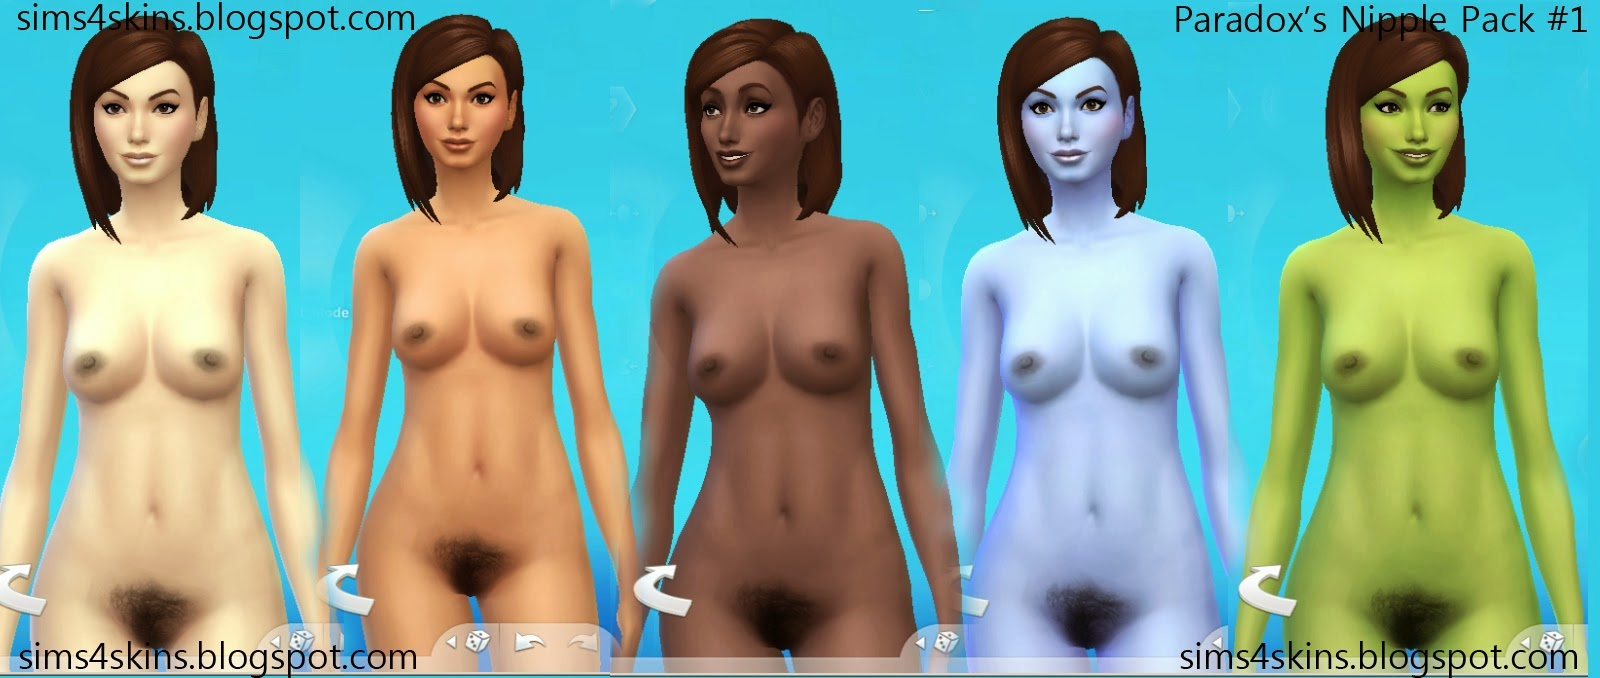 Sims2 nude skins erotic photo